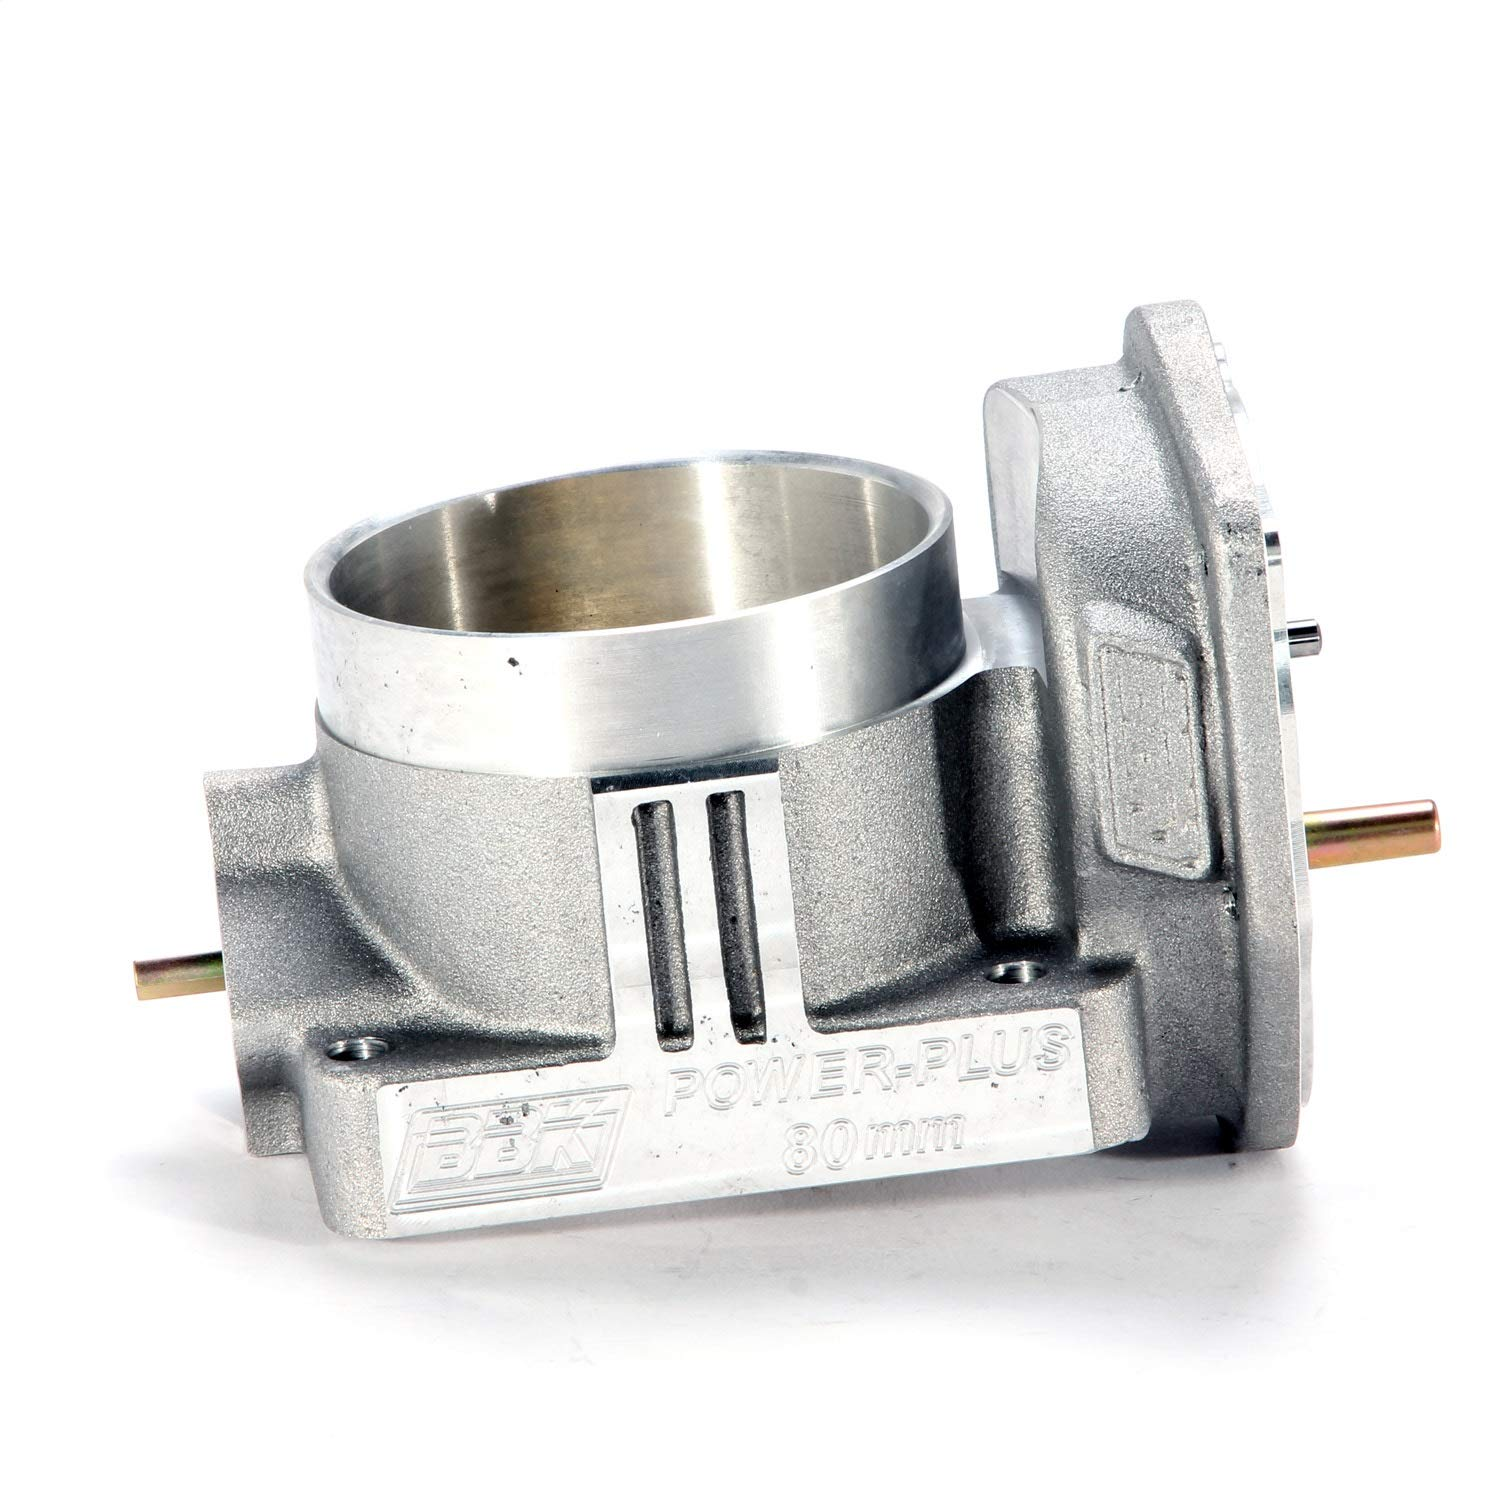 BBK 1759 80mm Throttle Body - High Flow Power Plus Series for Ford 5.4L F Series Truck And Expedition by BBK Performance